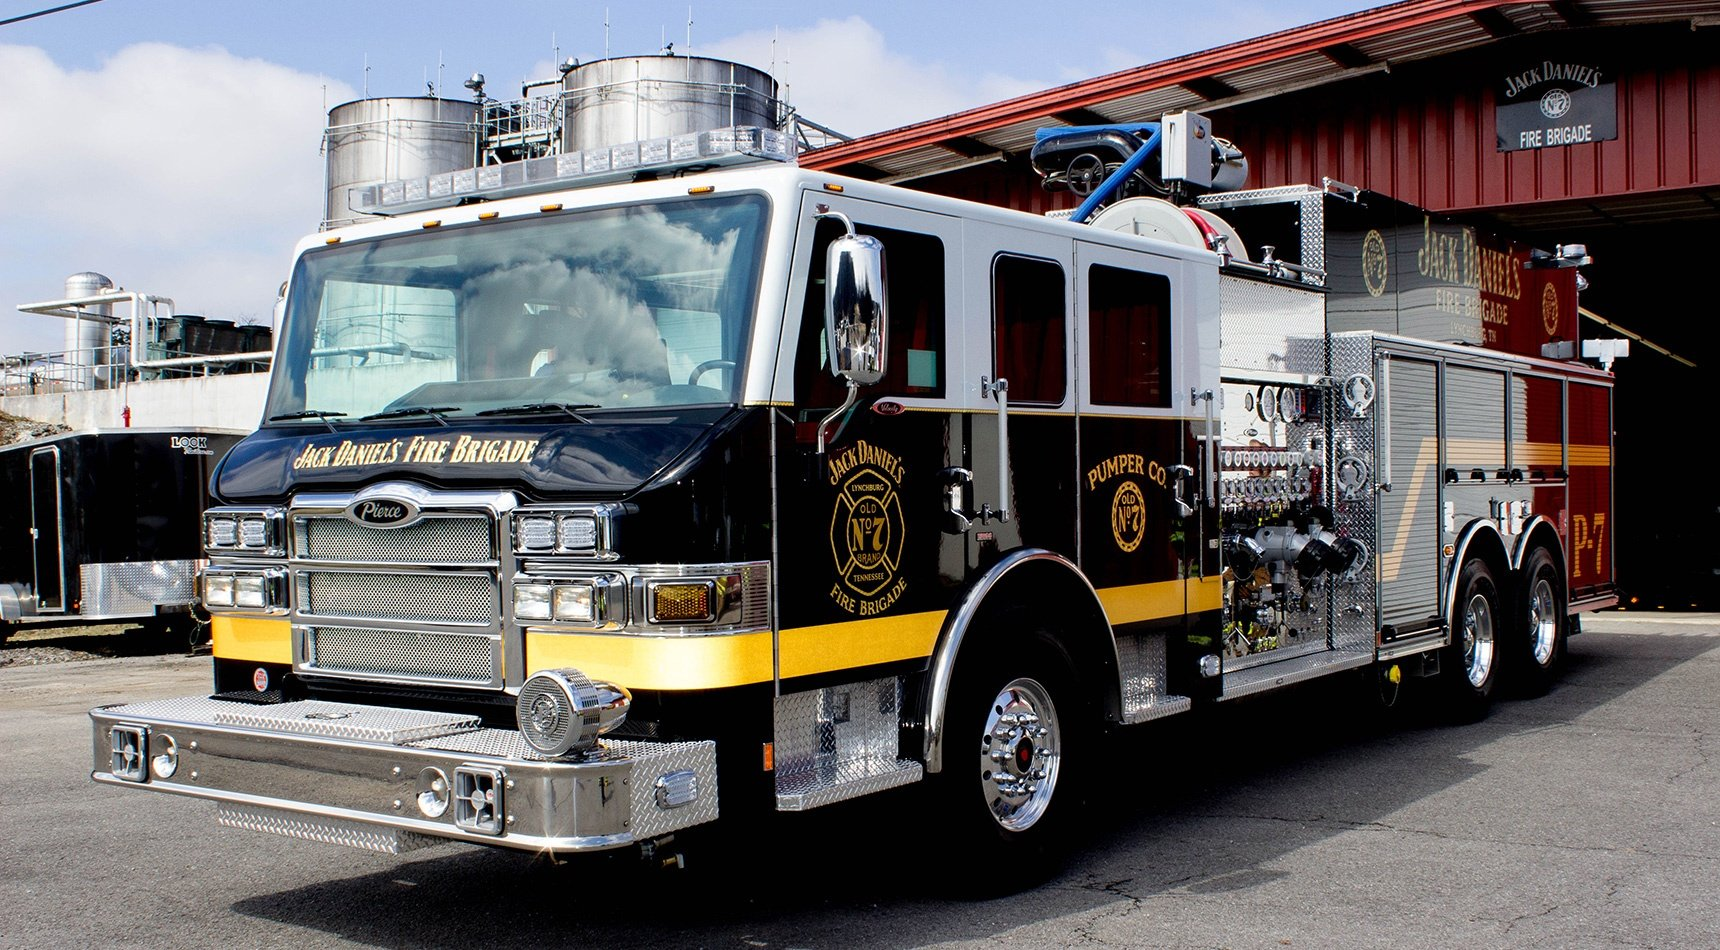 Pierce-Delivers-Industrial-Strength-Pumper-to-Protect-Iconic-Jack-Daniel-Distillery-in-Lynchburg,-Tennessee_Header.jpg